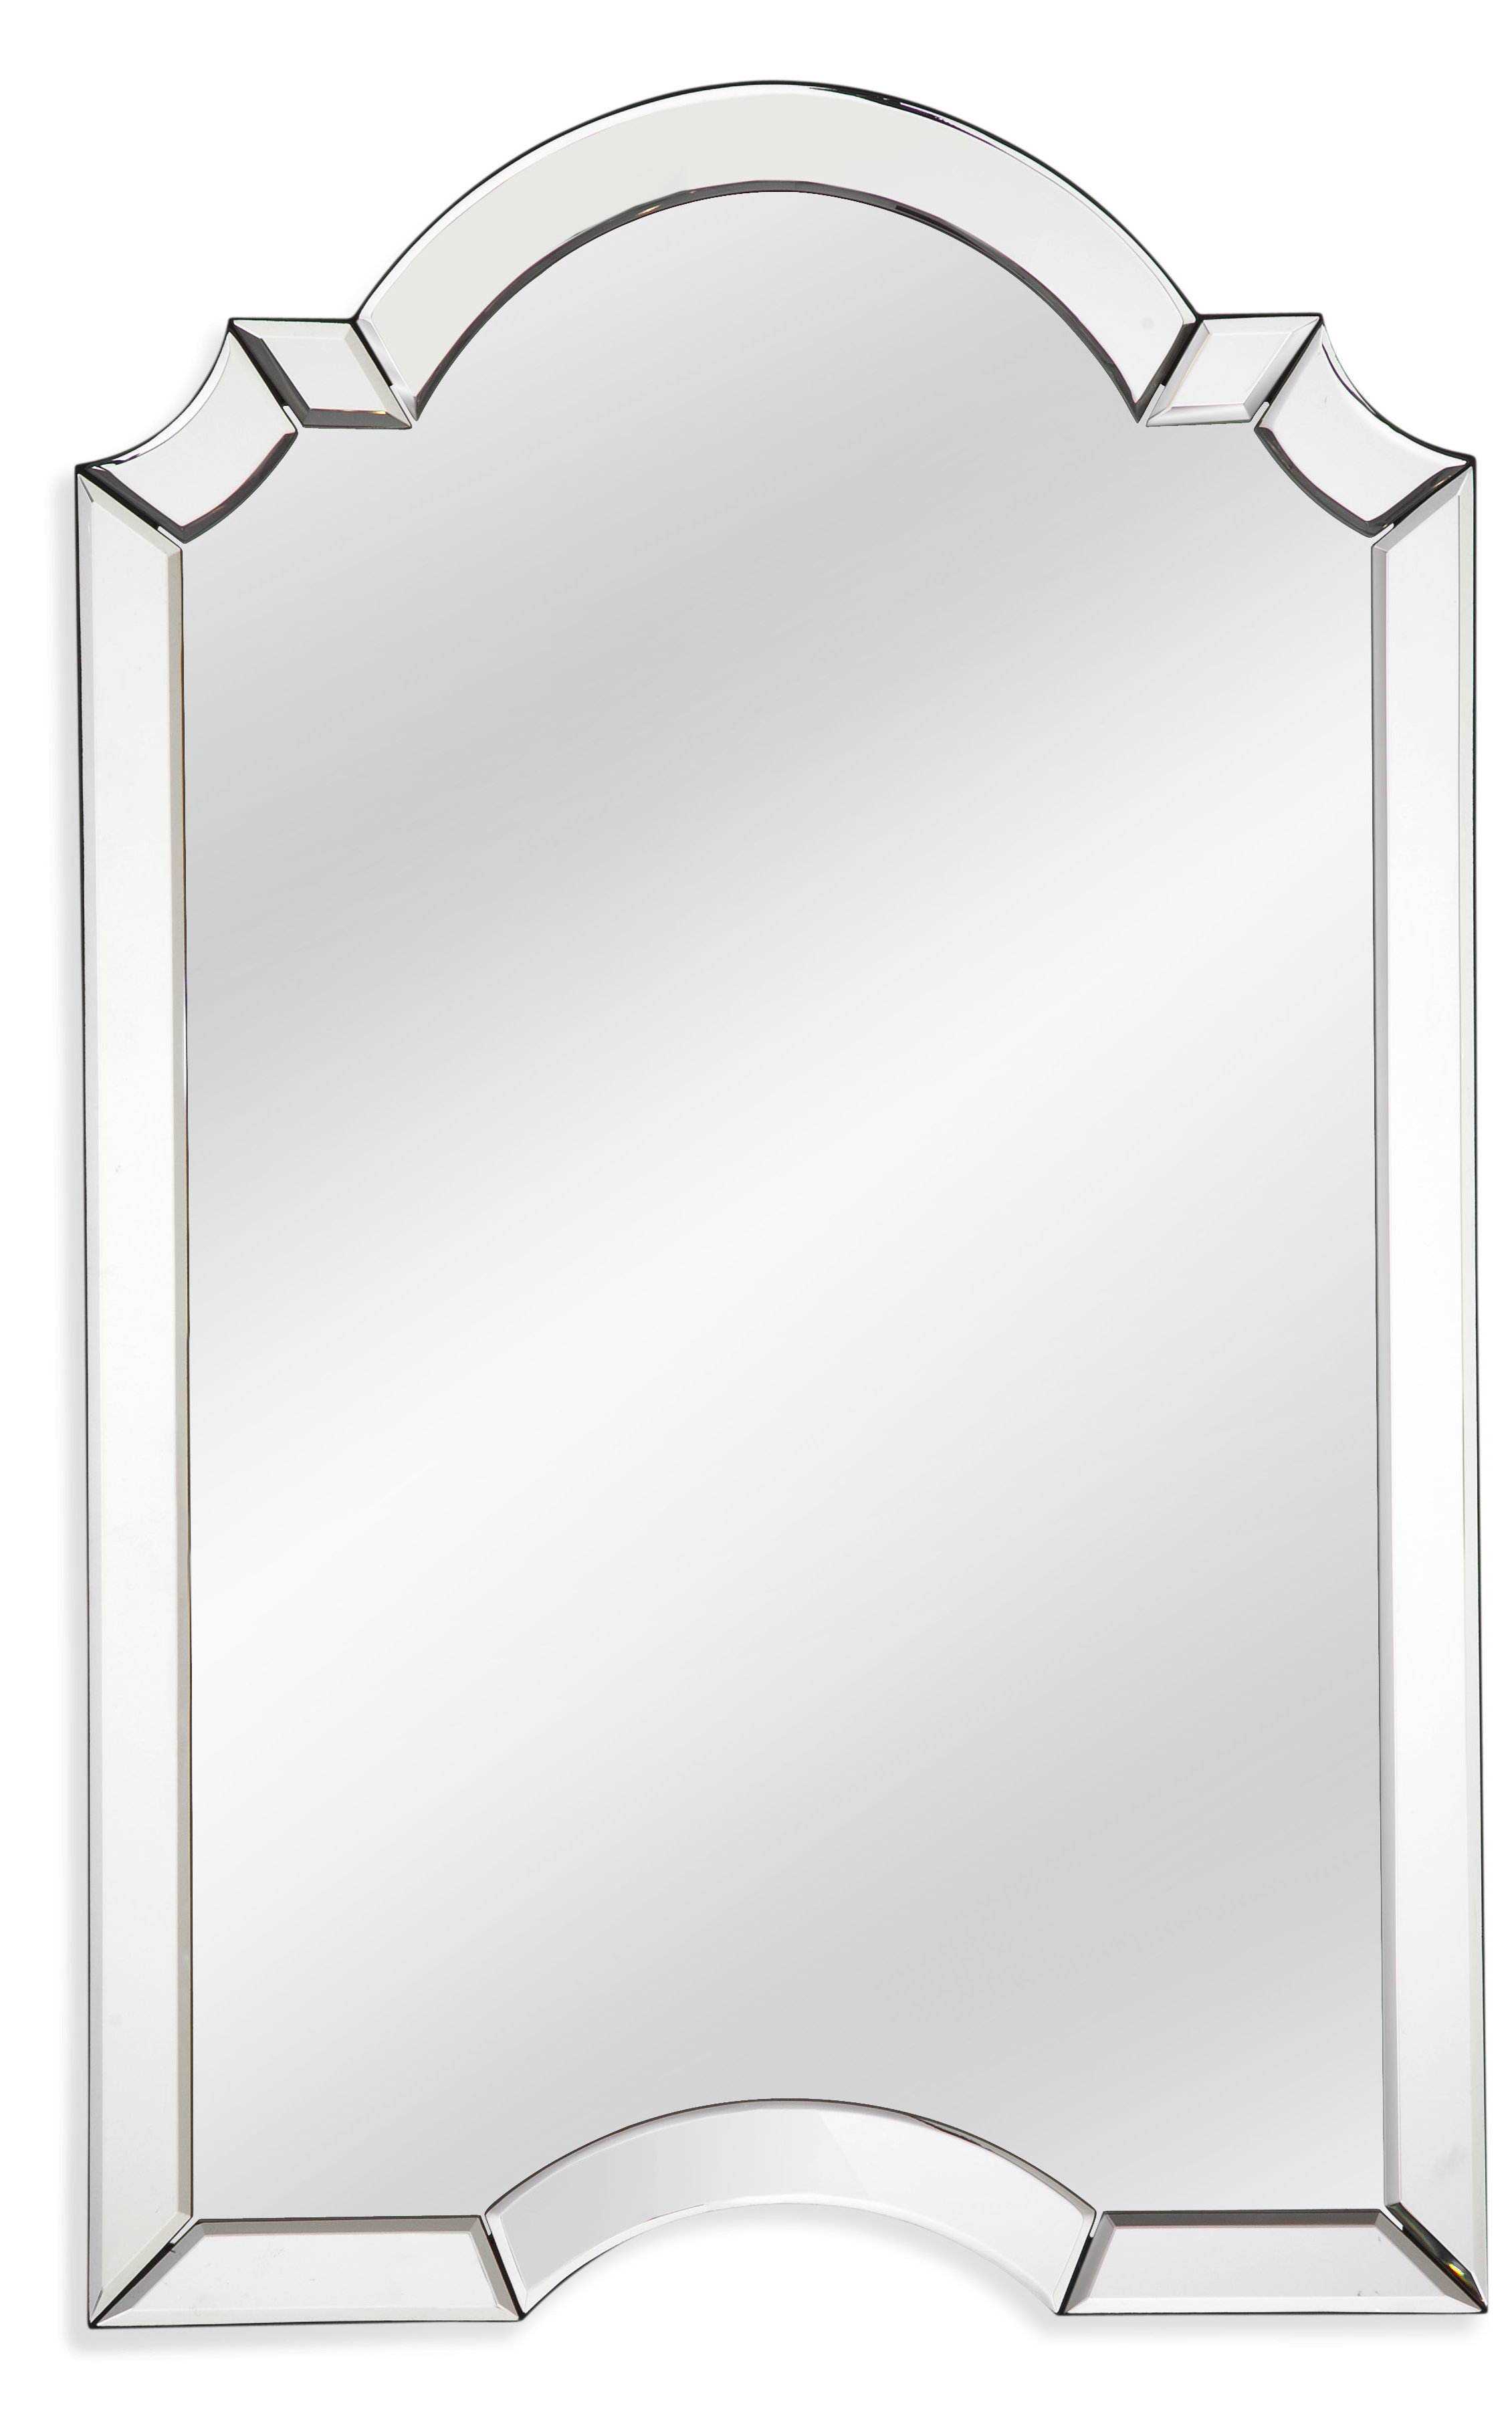 Modern Arch / Crowned Top Wall Mirrors | Allmodern Regarding Ekaterina Arch/crowned Top Wall Mirrors (Image 17 of 20)